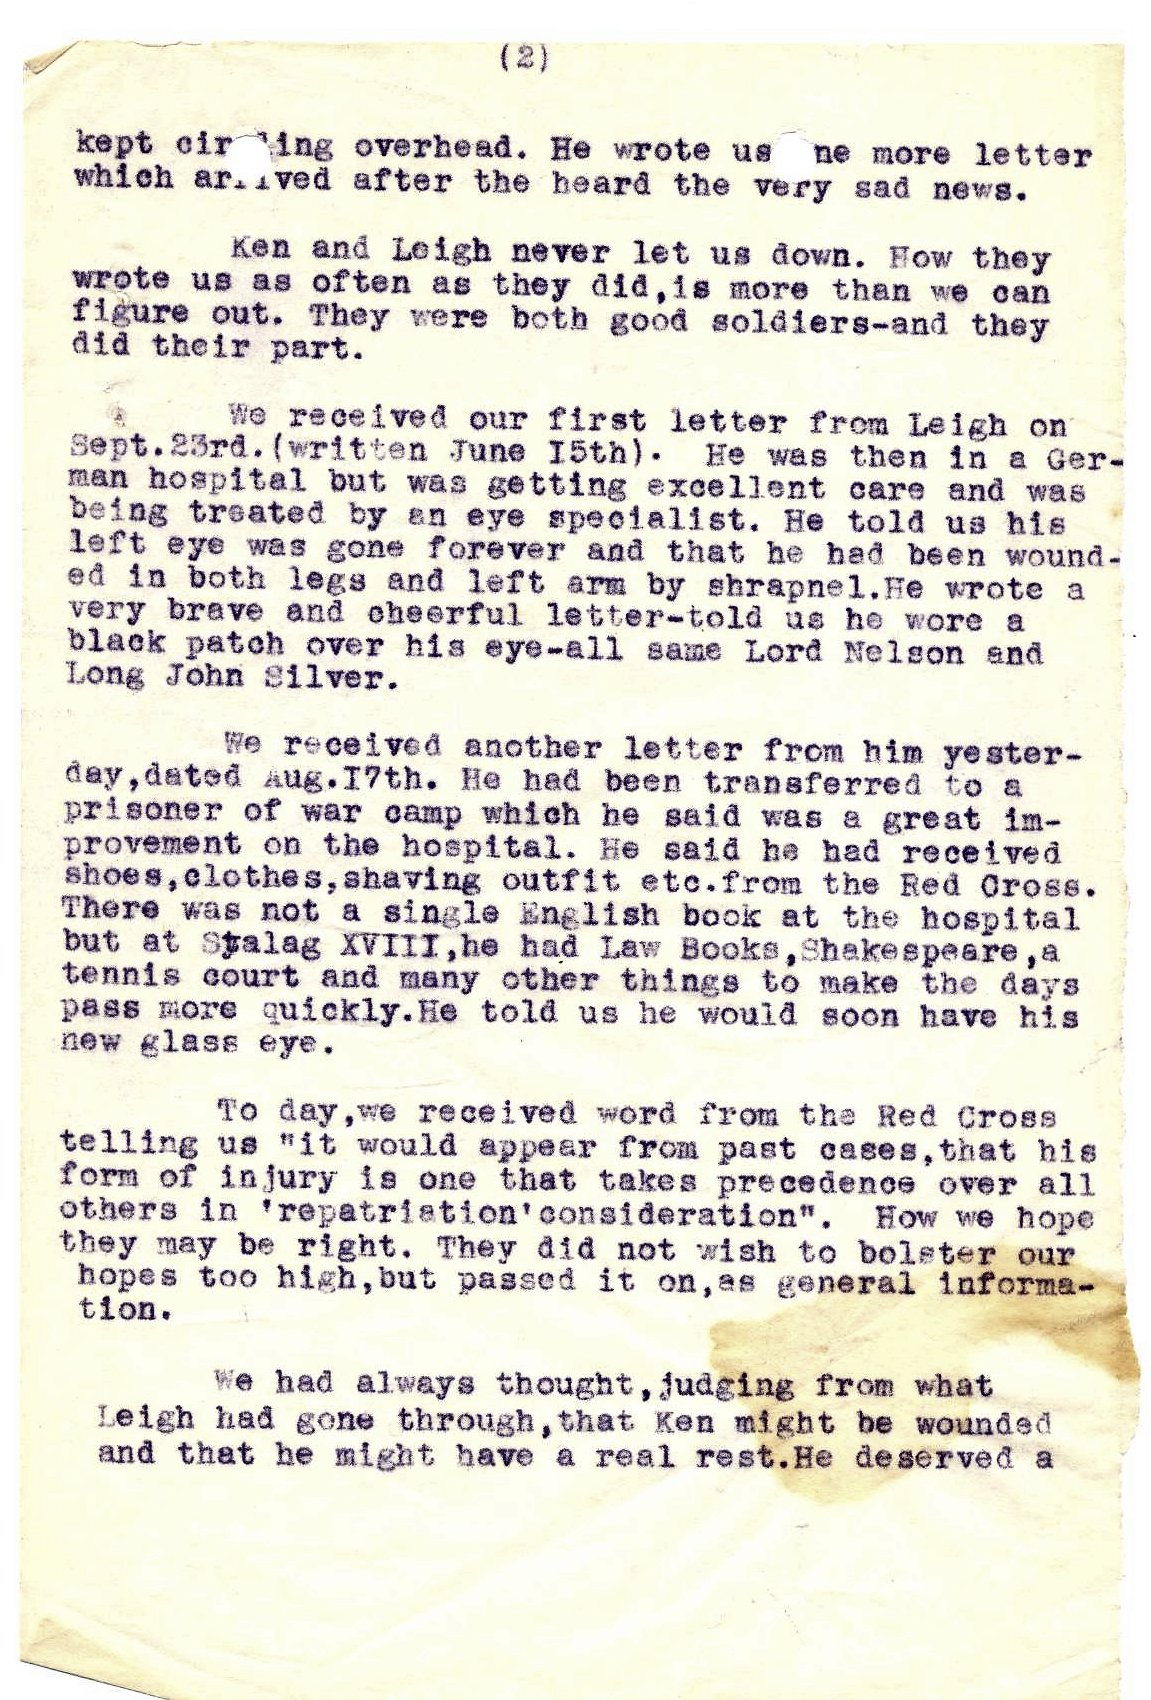 Letter - October 1, 1944 (Page 2 of 3)